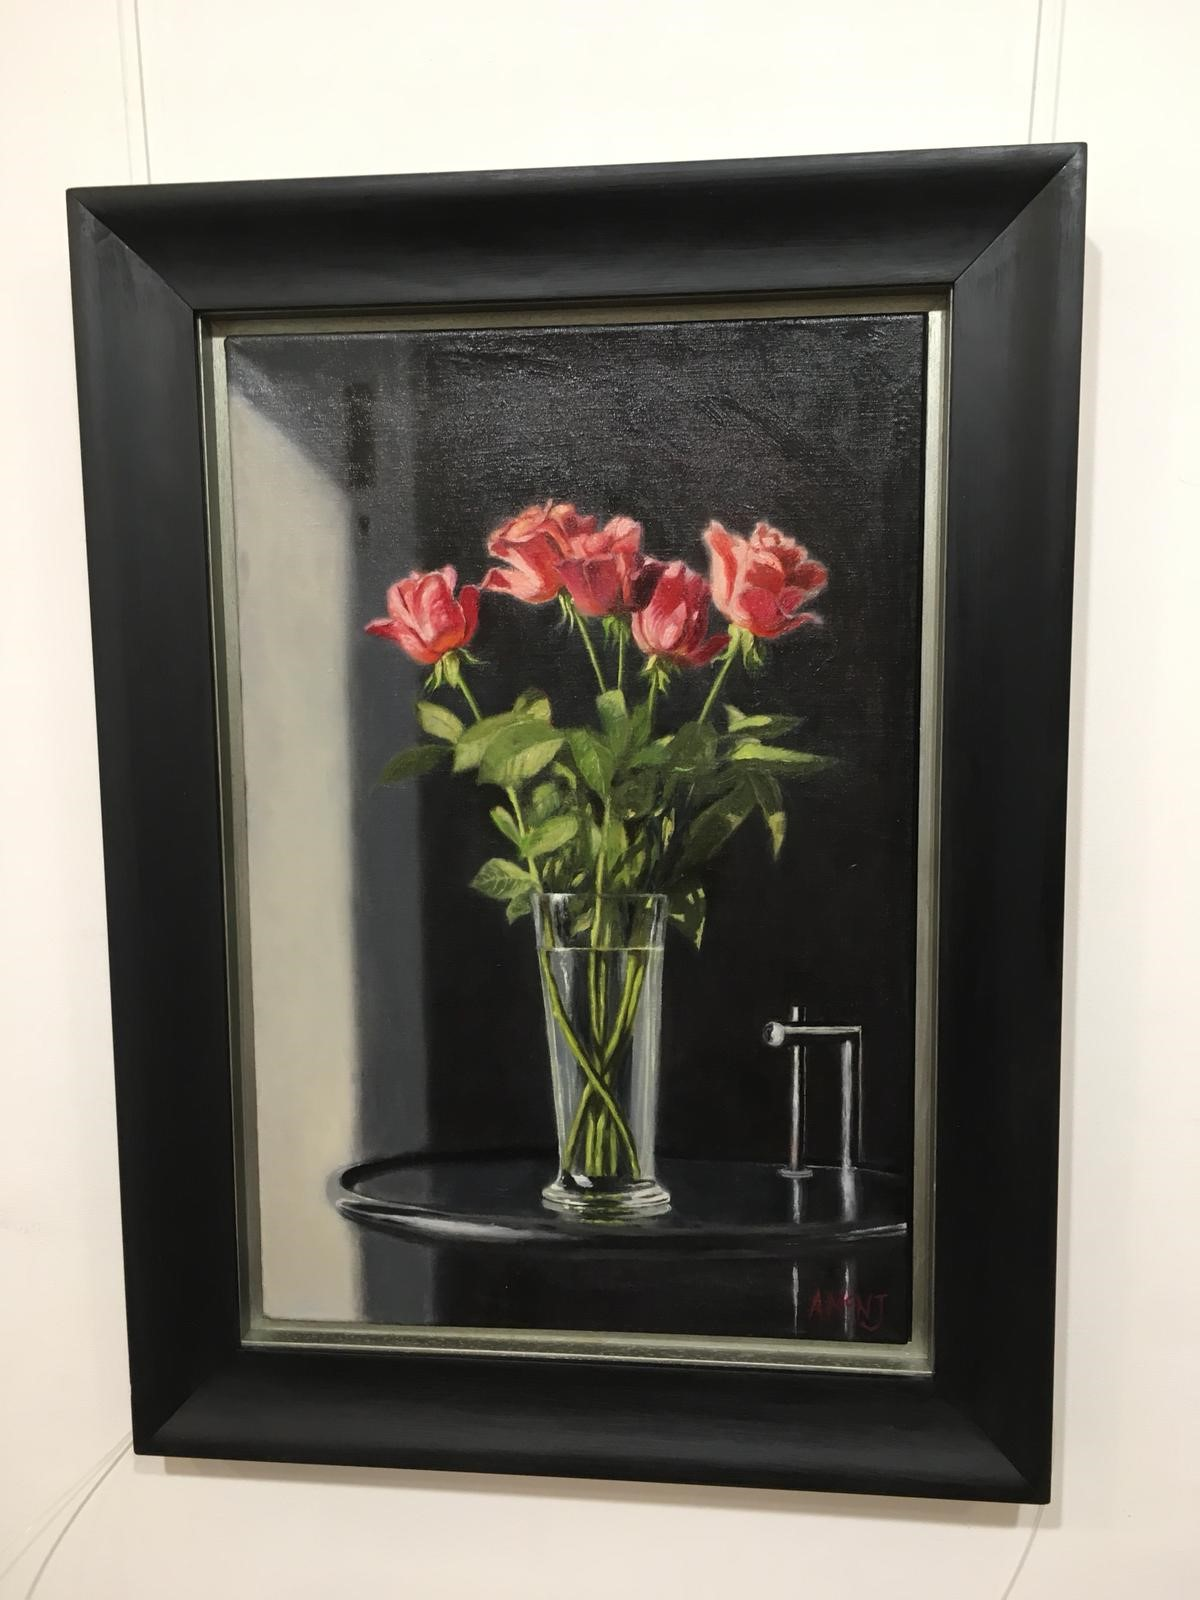 'A Vase of Red Roses' by artist Andrew McNeile Jones